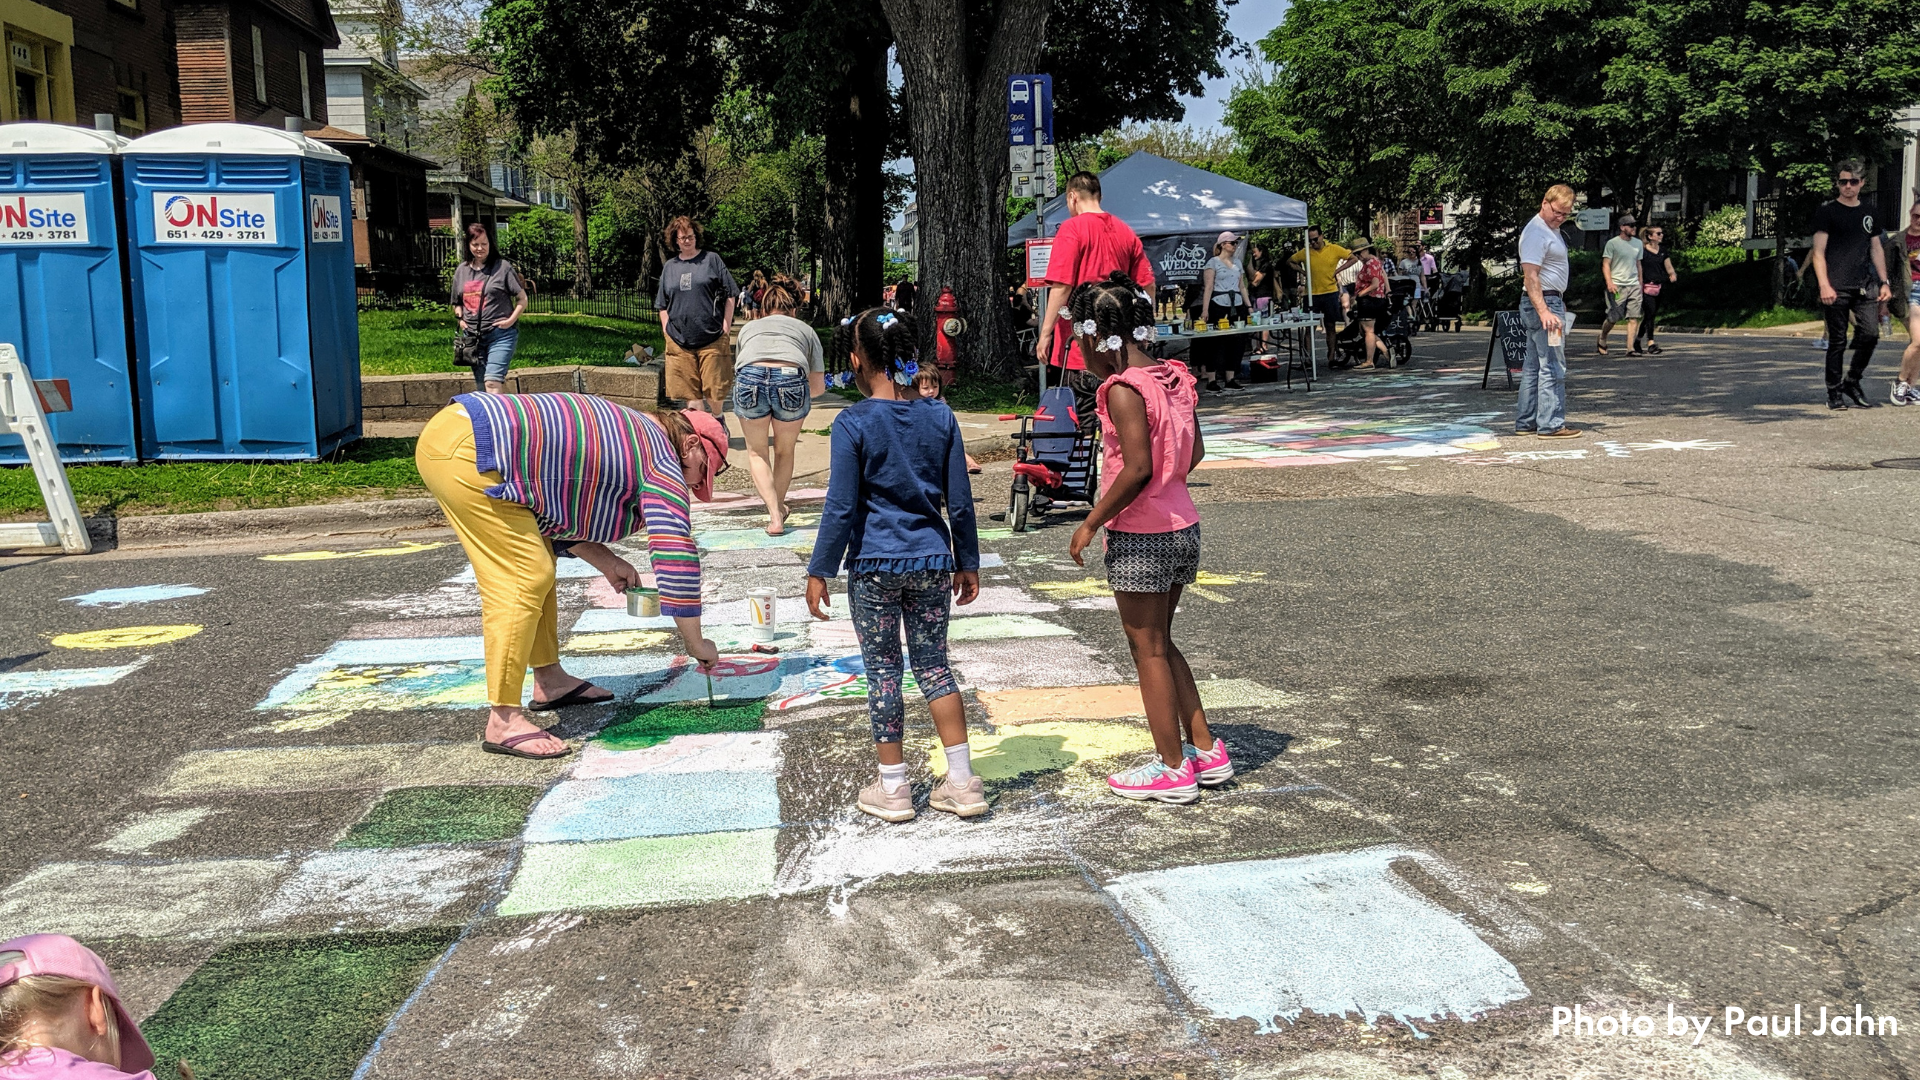 An adult and two children using chalk to make an art crosswalk at Open Streets Lyndale